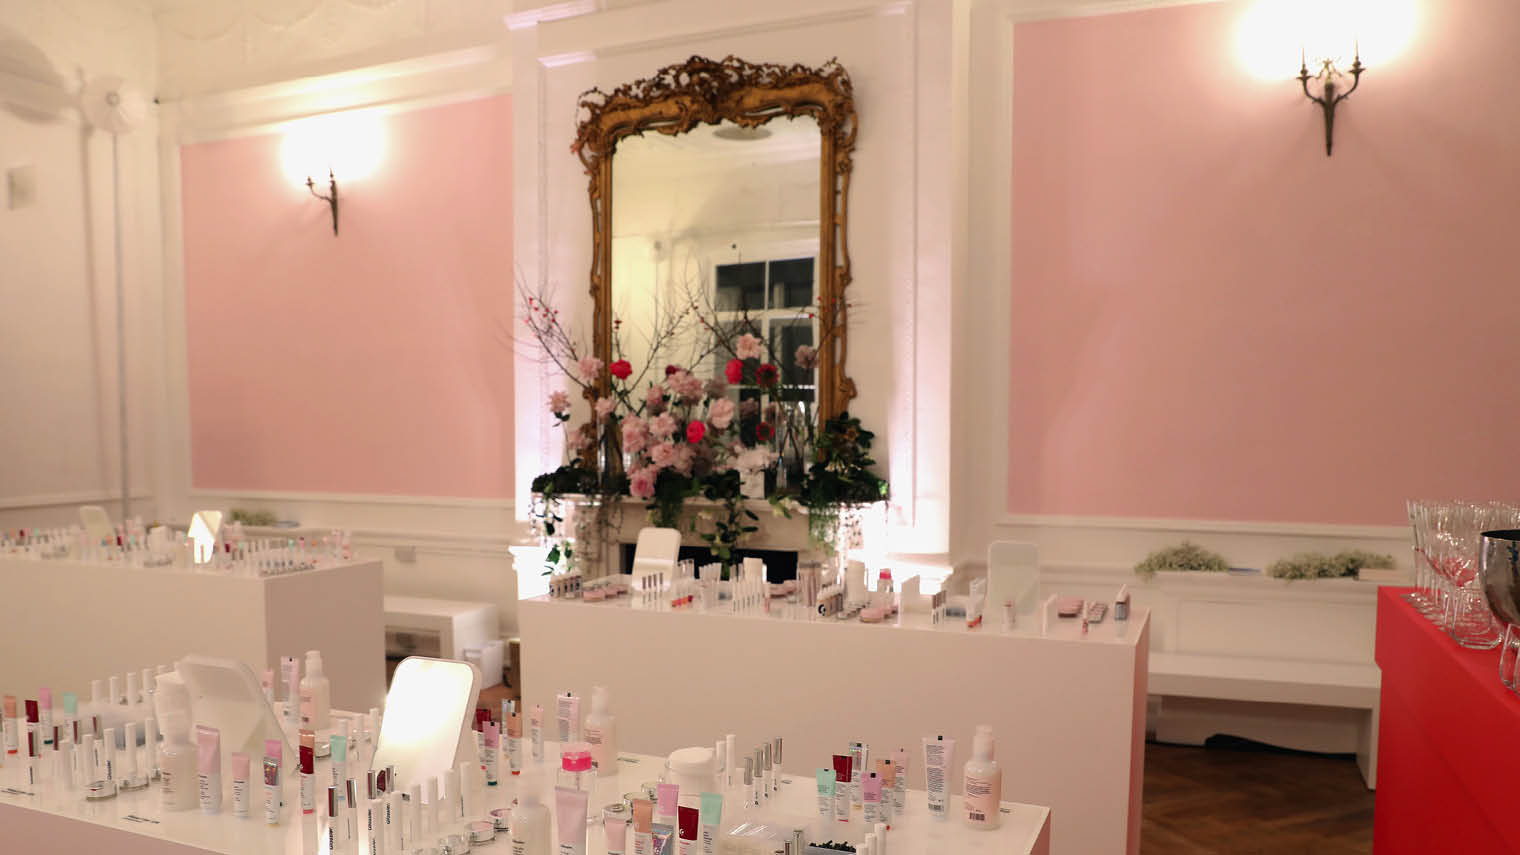 Glossier interactive brand experience with make up laid on tables